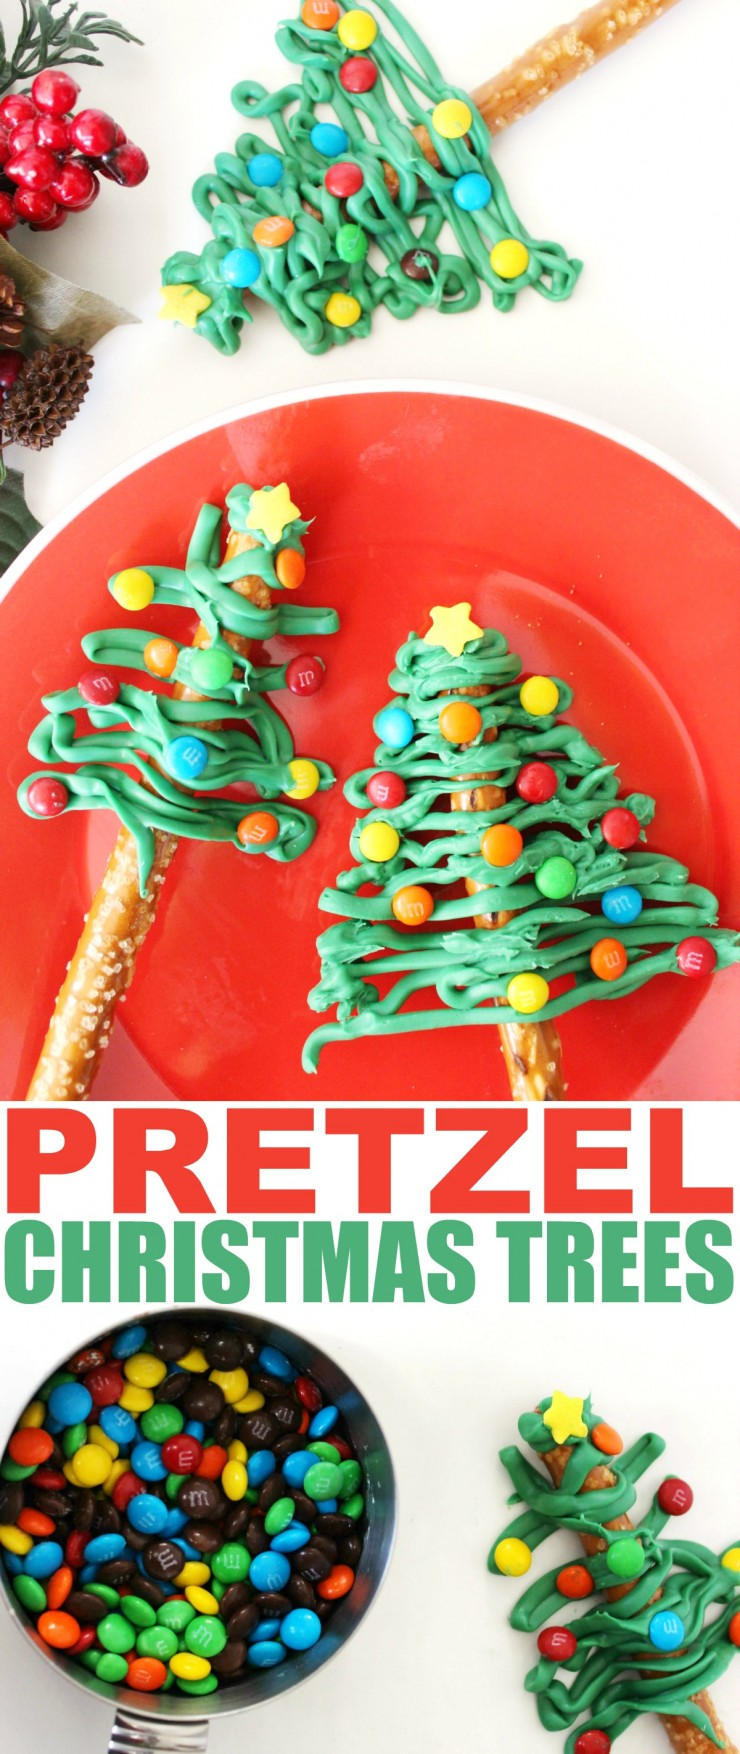 These Pretzel Christmas Trees make a simple and easy to make treat that look far more complicated than they really are. This of course makes them the perfect treat to impress your holiday party guests with!